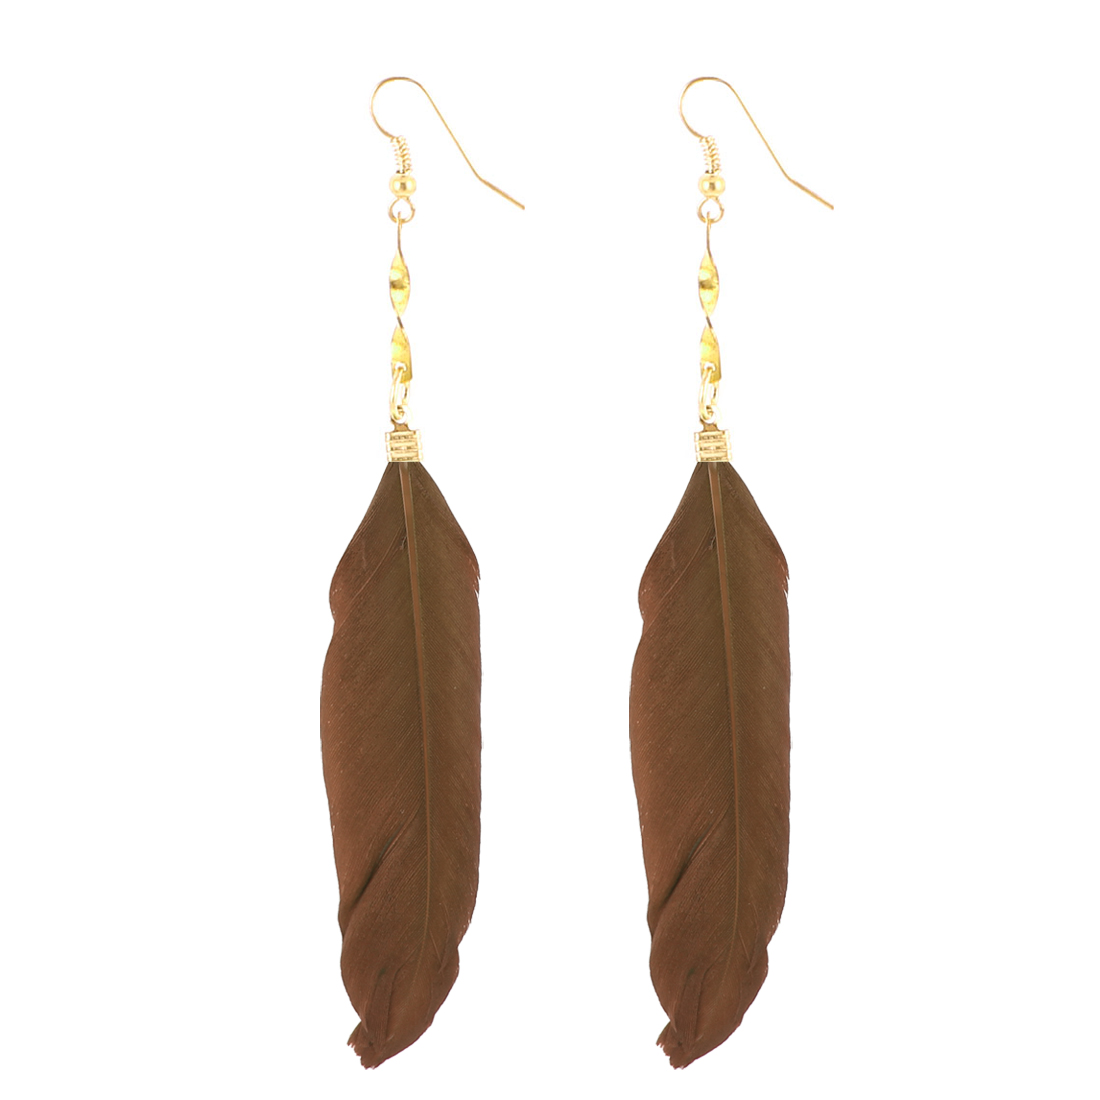 Lady Faux Feather Pendant Fish Hook Dangle Earrings Eardrop 2 Pcs Brown